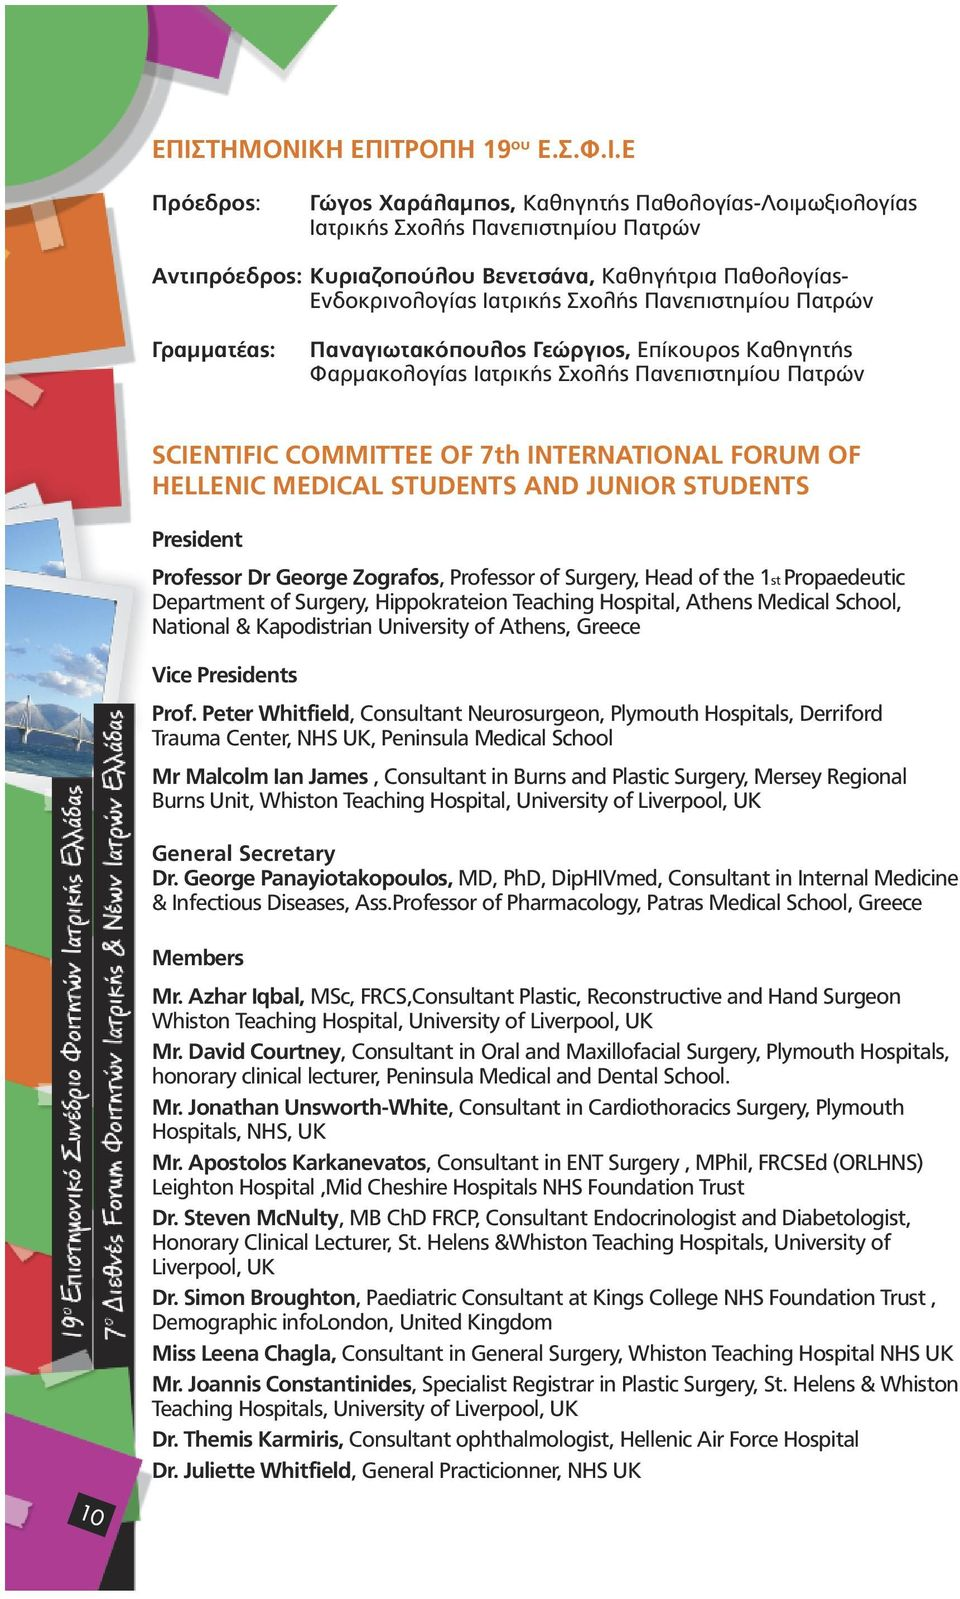 7th INTERNATIONAL FORUM OF HELLENIC MEDICAL STUDENTS AND JUNIOR STUDENTS President Professor Dr George Zografos, Professor of Surgery, Head of the 1st Propaedeutic Department of Surgery,